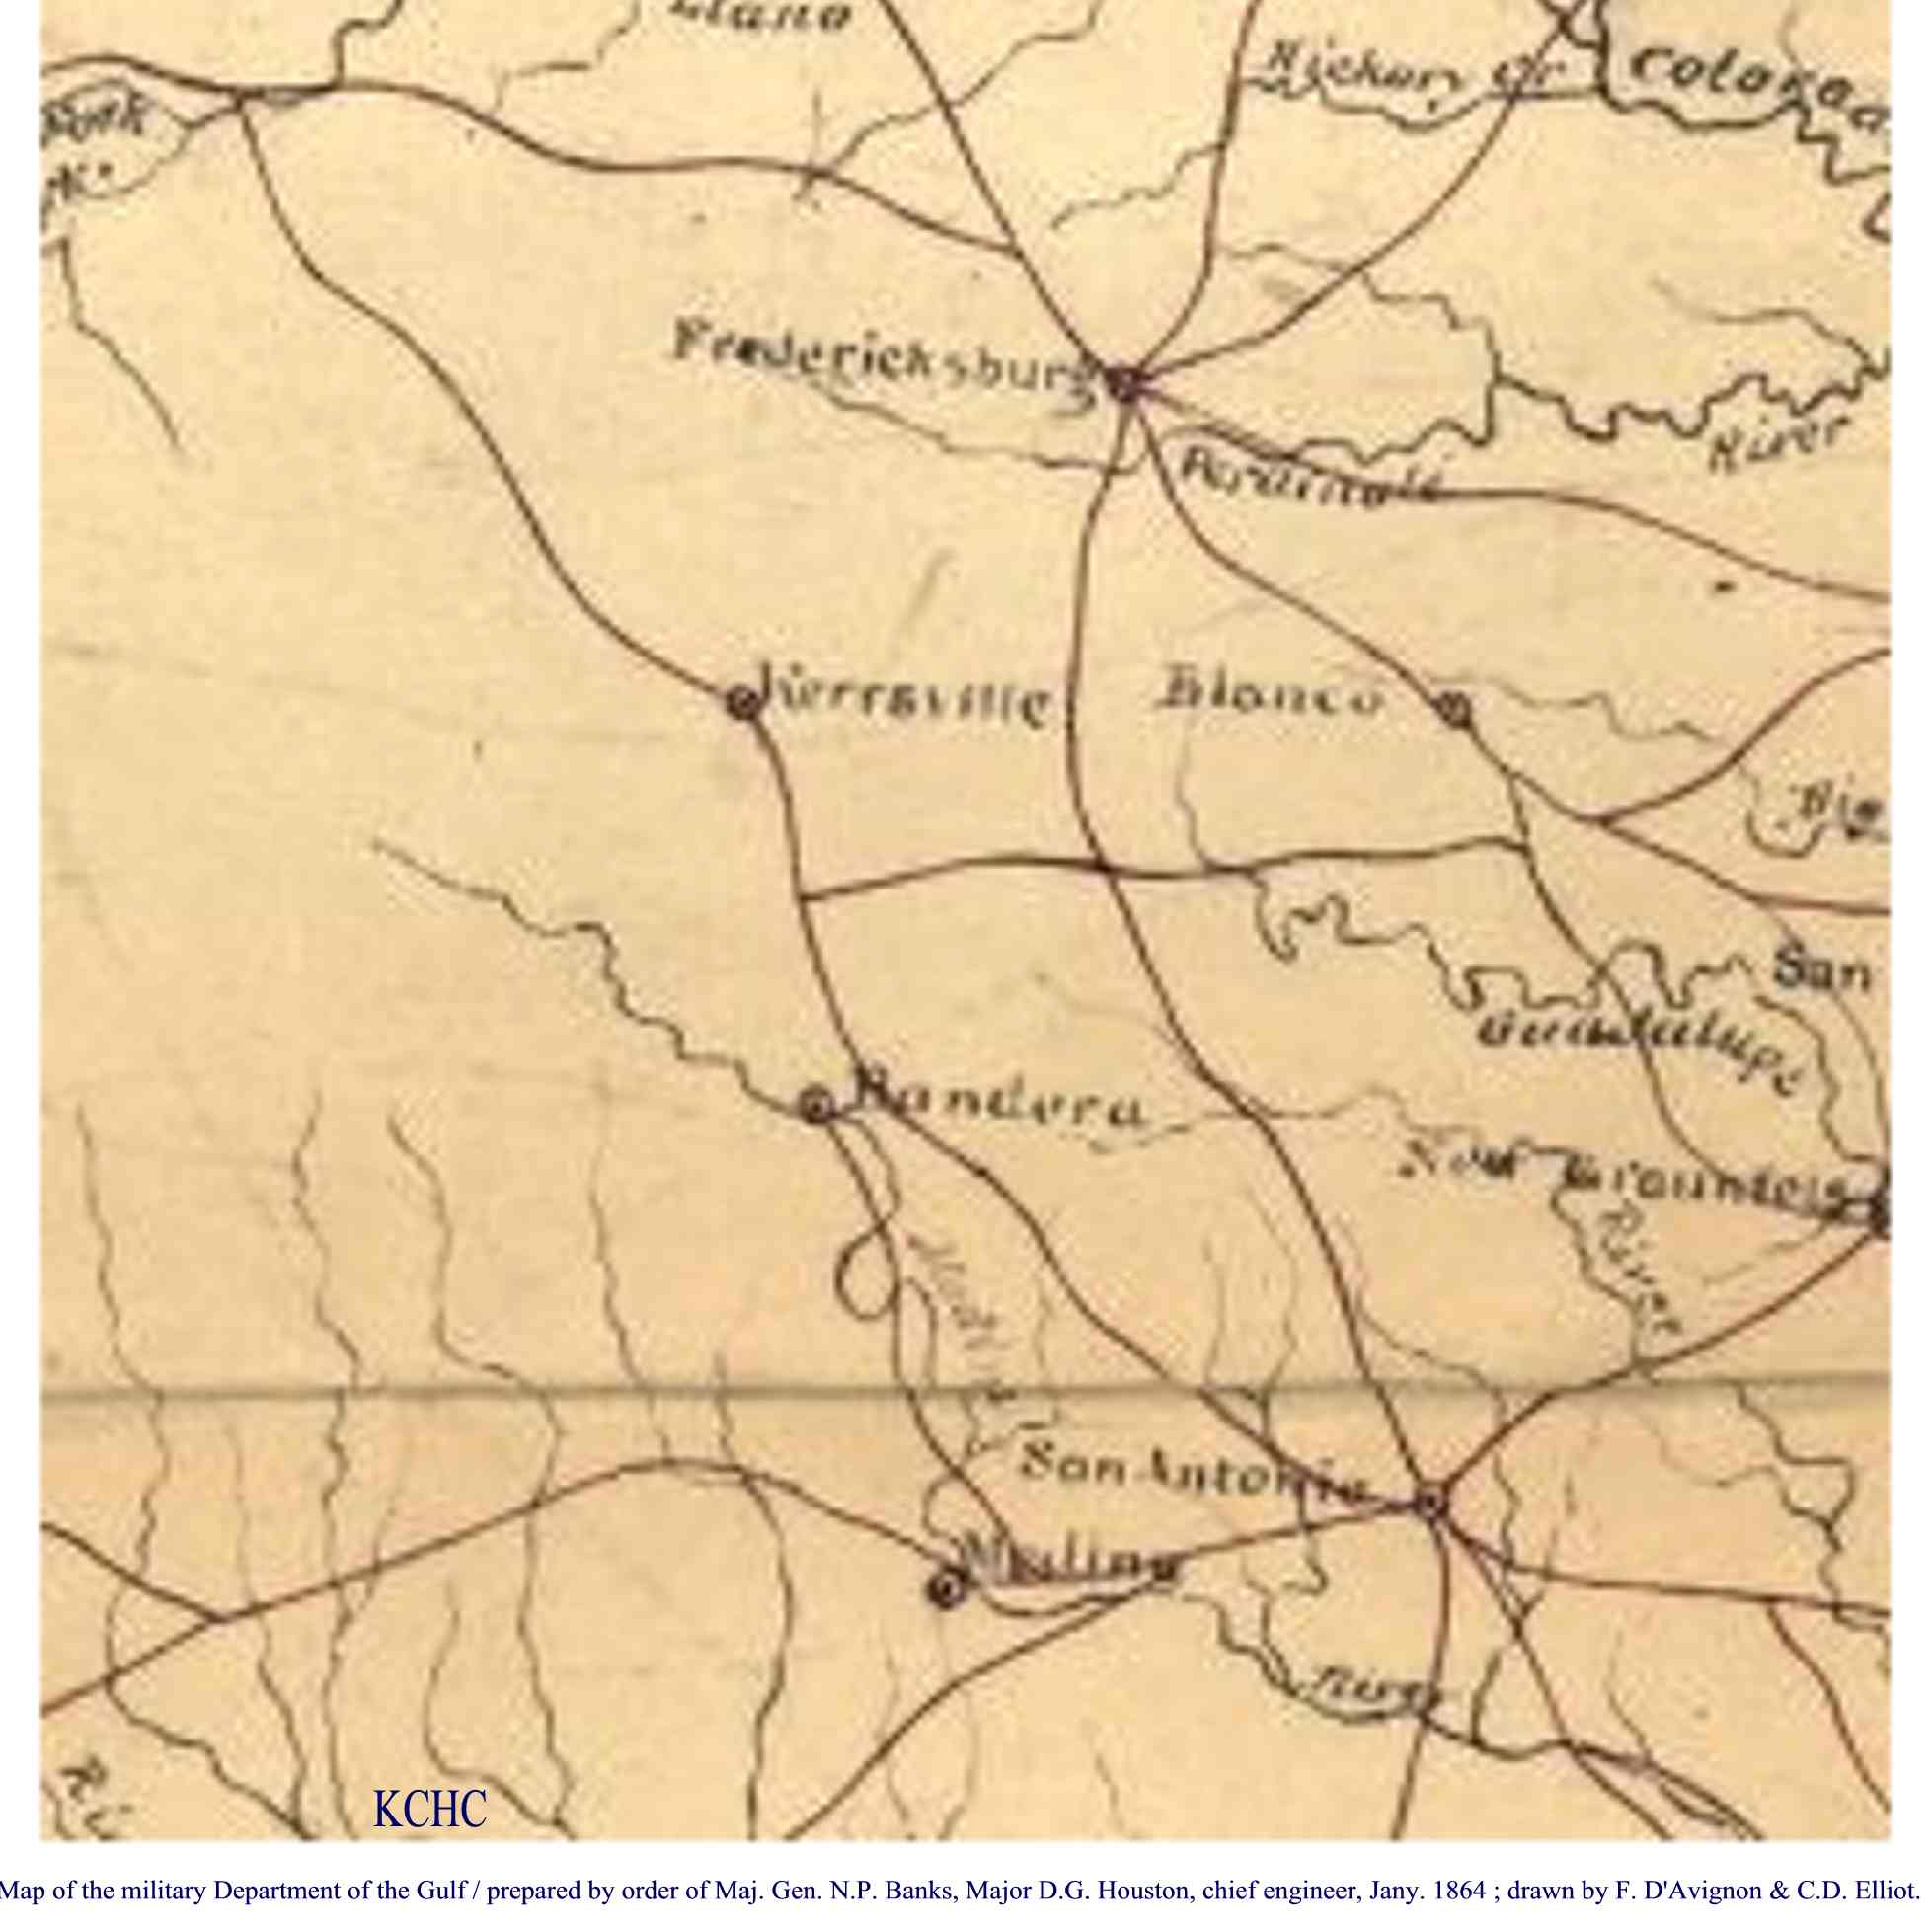 Maps in History – Hill Country Archeological ociation Map Kerrville Texas on kilgore texas map, center point texas map, texas state map, austin tx map, seguin texas map, geronimo texas map, kyle texas map, jamestown texas map, rice university texas map, kingsville texas map, jonesboro texas map, altus texas map, south san antonio texas map, kerr county map, la coste texas map, new braunsfels texas map, spencer texas map, deming texas map, alamo heights texas map, texas hill country map,